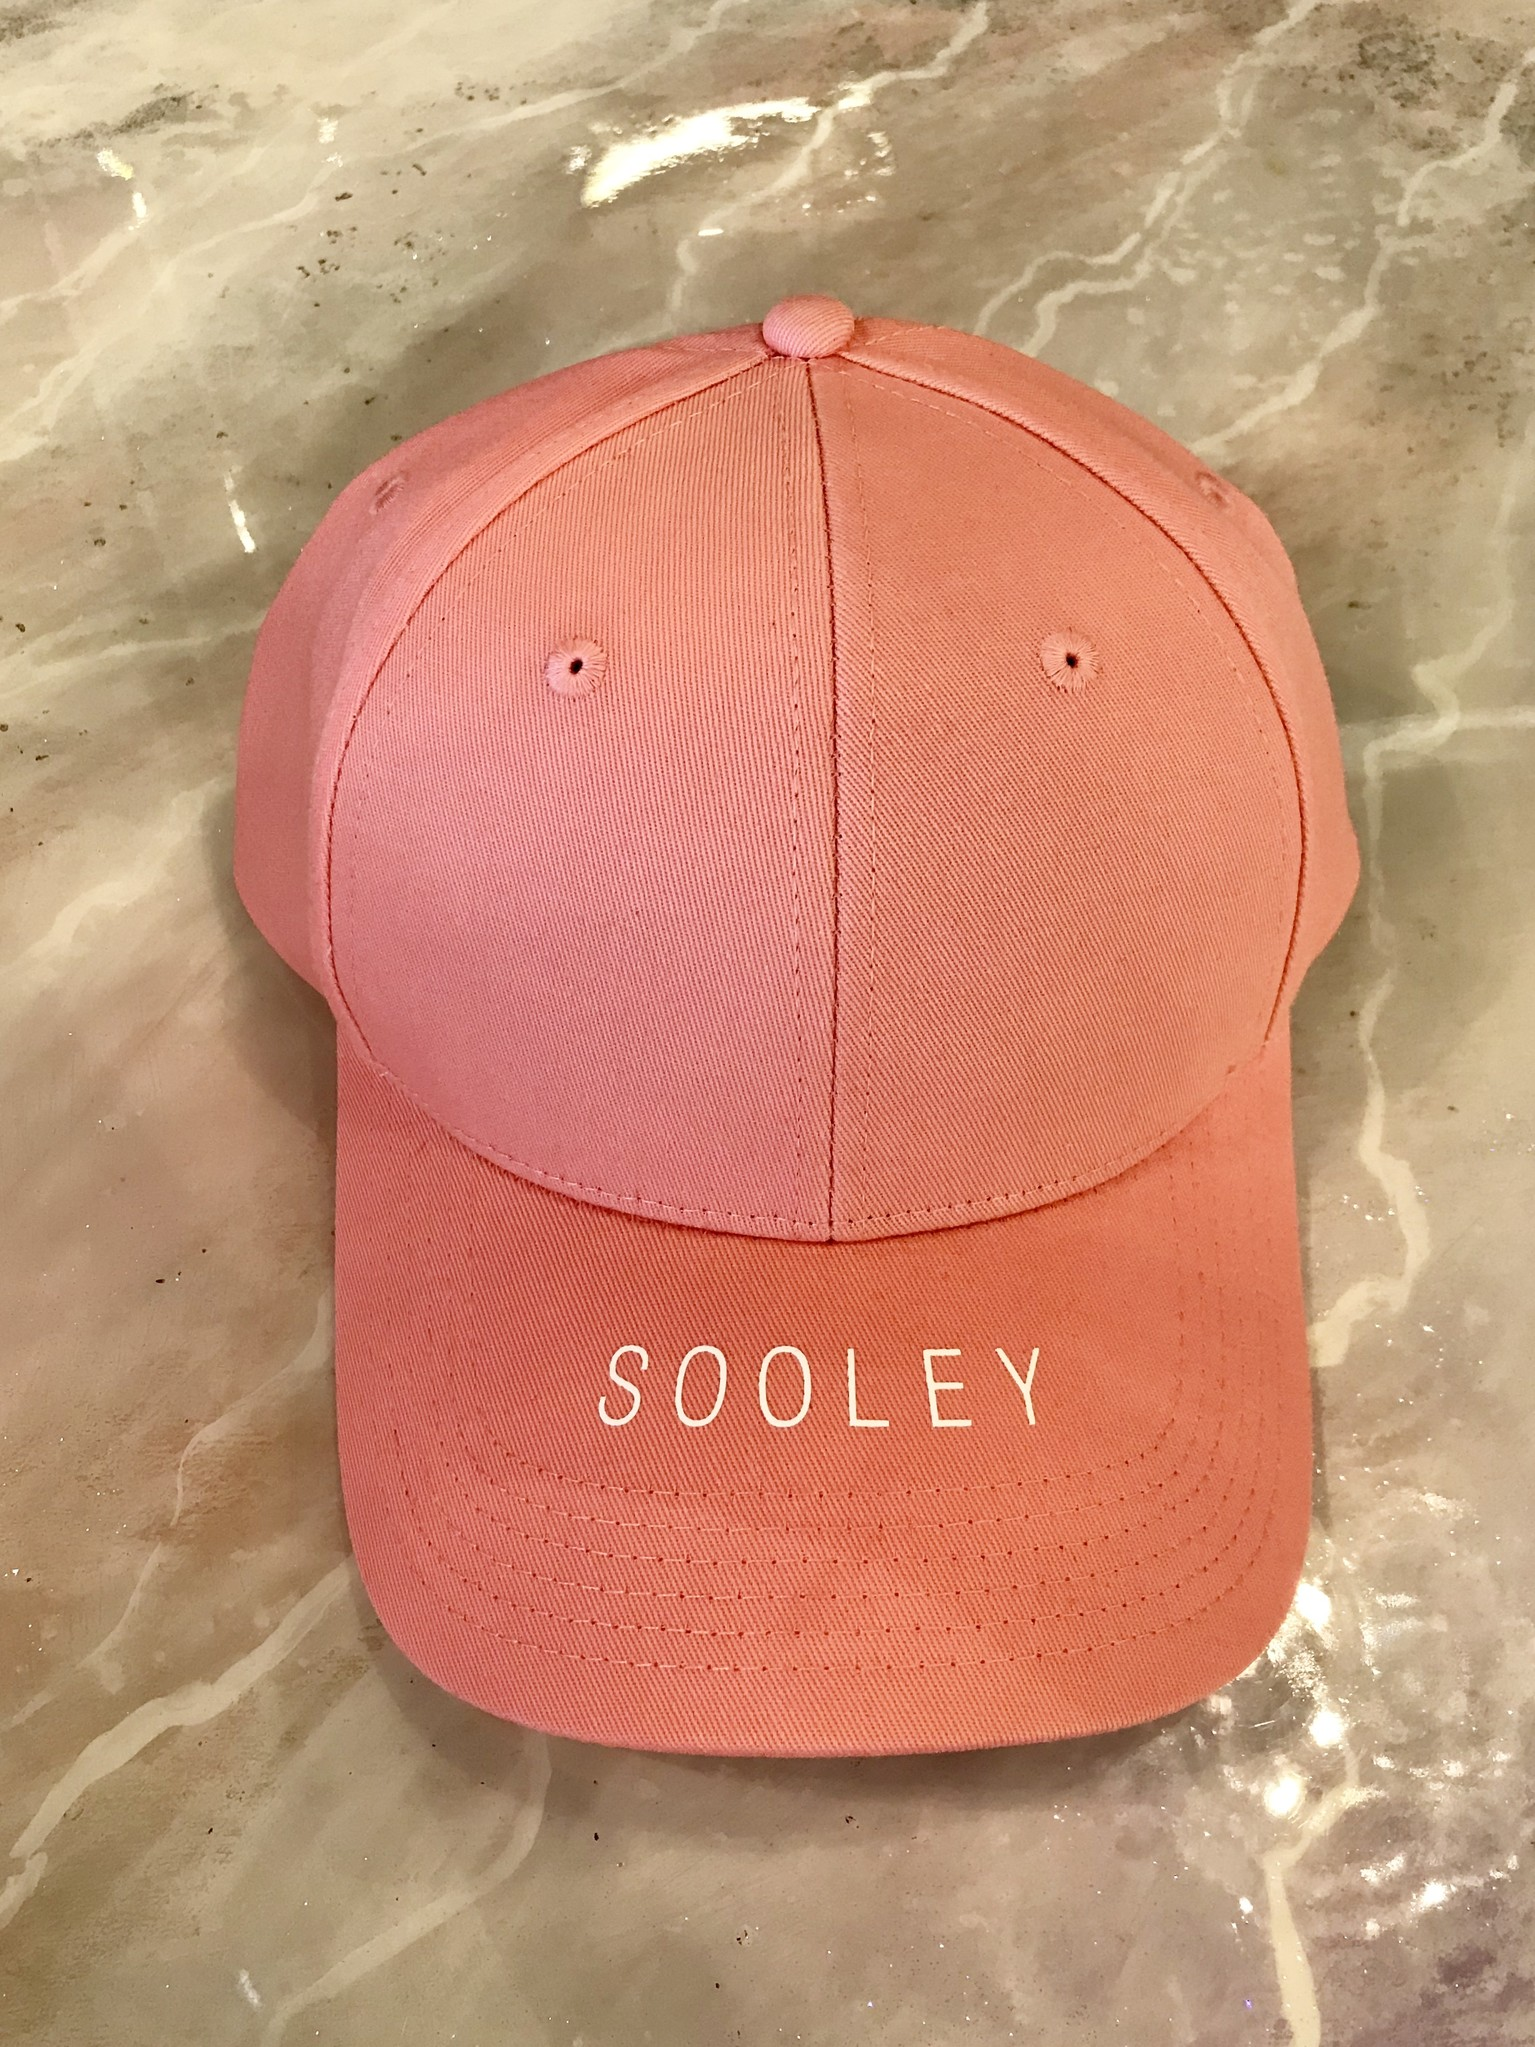 Sooley Designs Sooley Baseball Hat - Coral